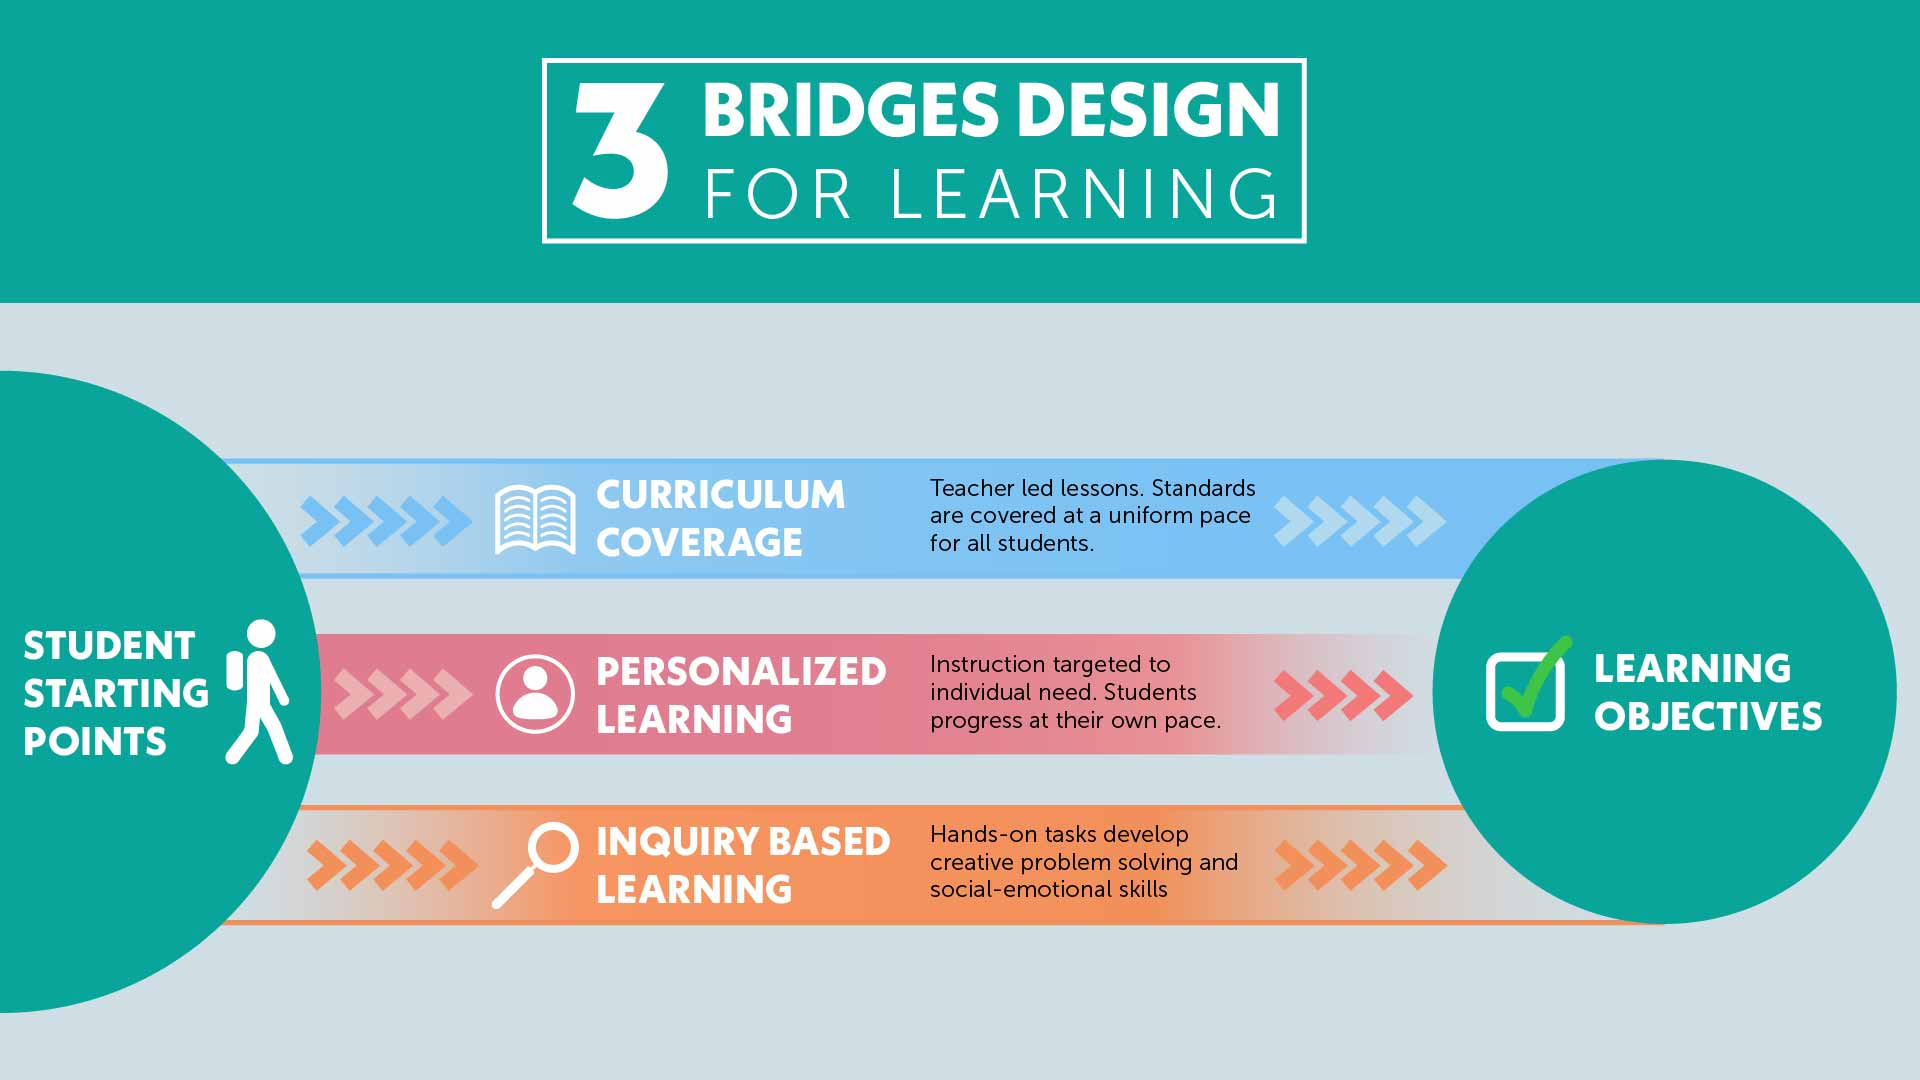 Three Bridges Design for Learning balances differentiation with content coverage